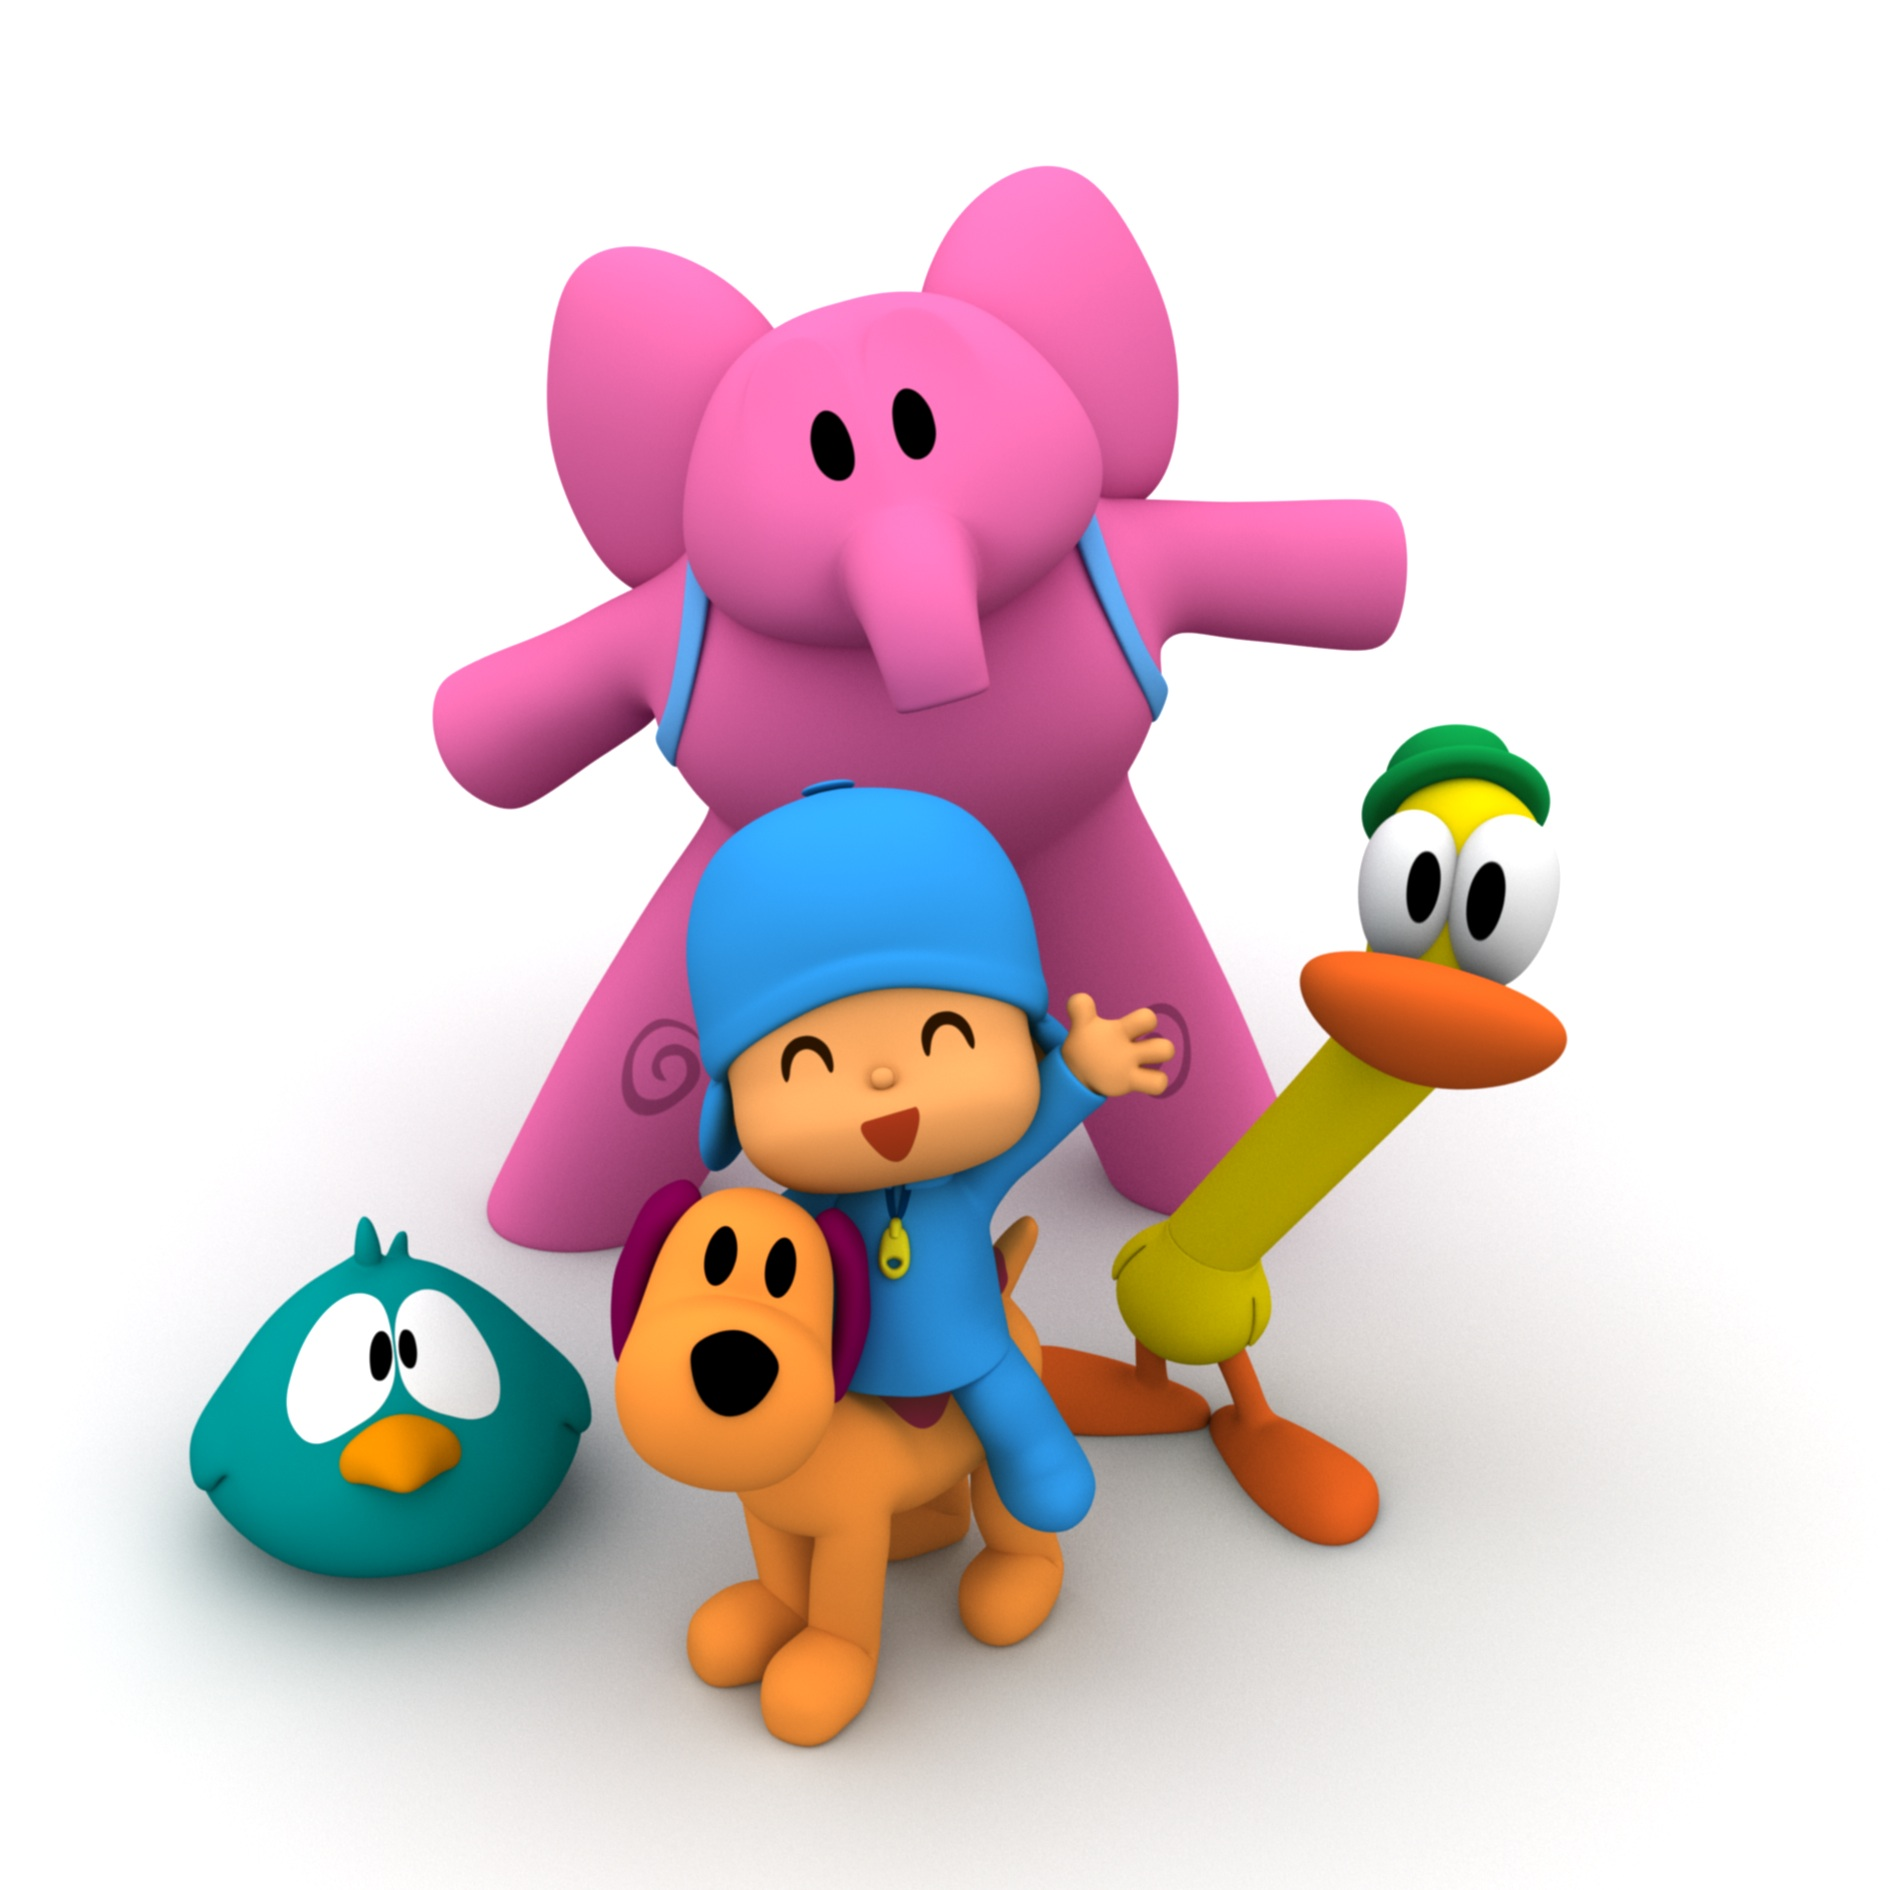 Must see Wallpaper Harry Potter Animated - Pocoyo-2  You Should Have_126617.jpg